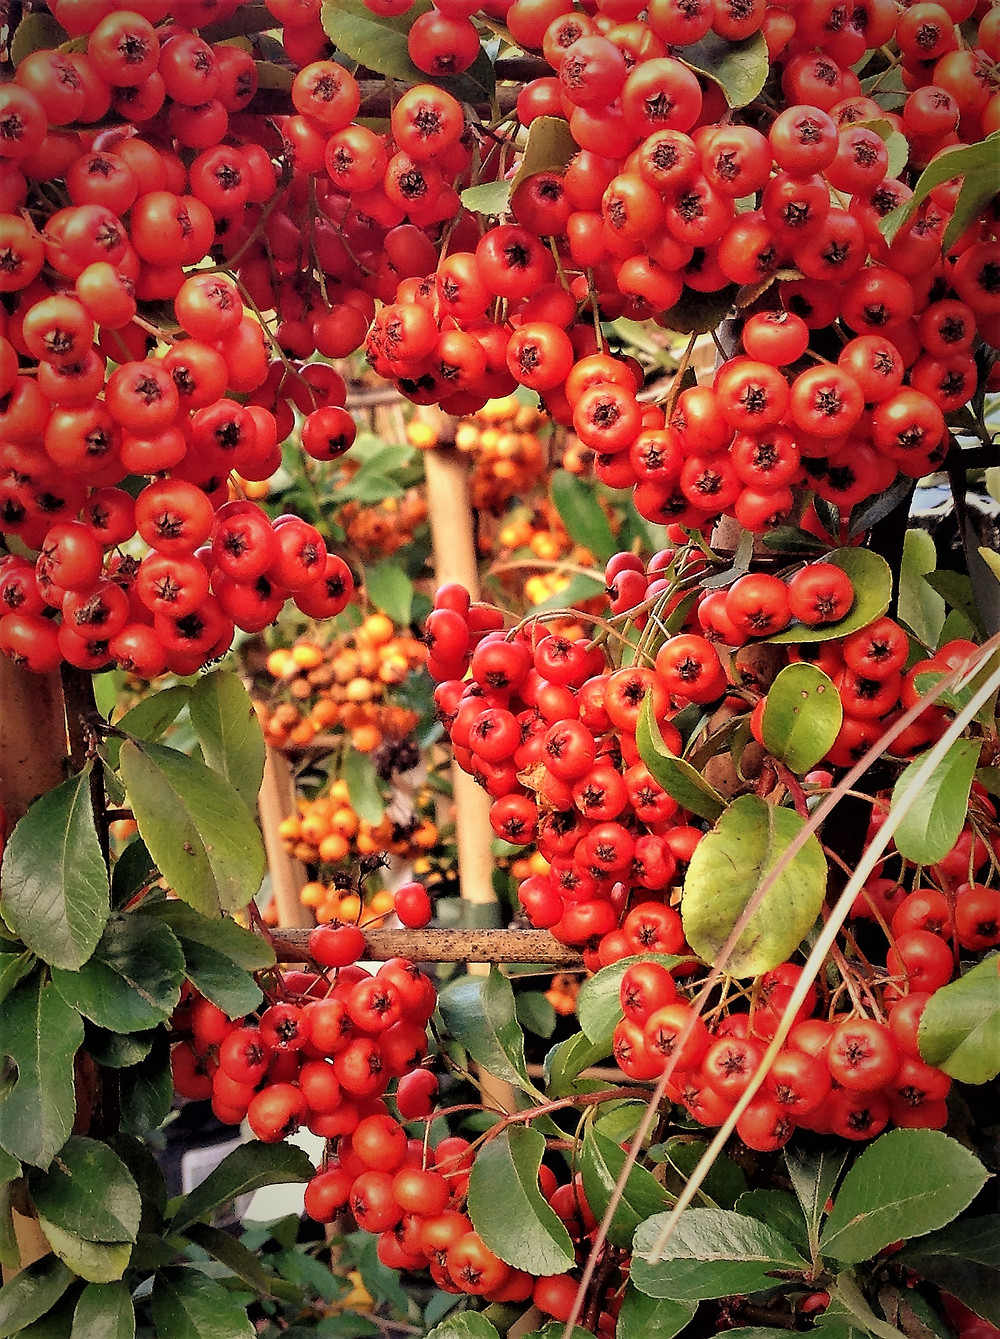 Red and orange pyracantha berries